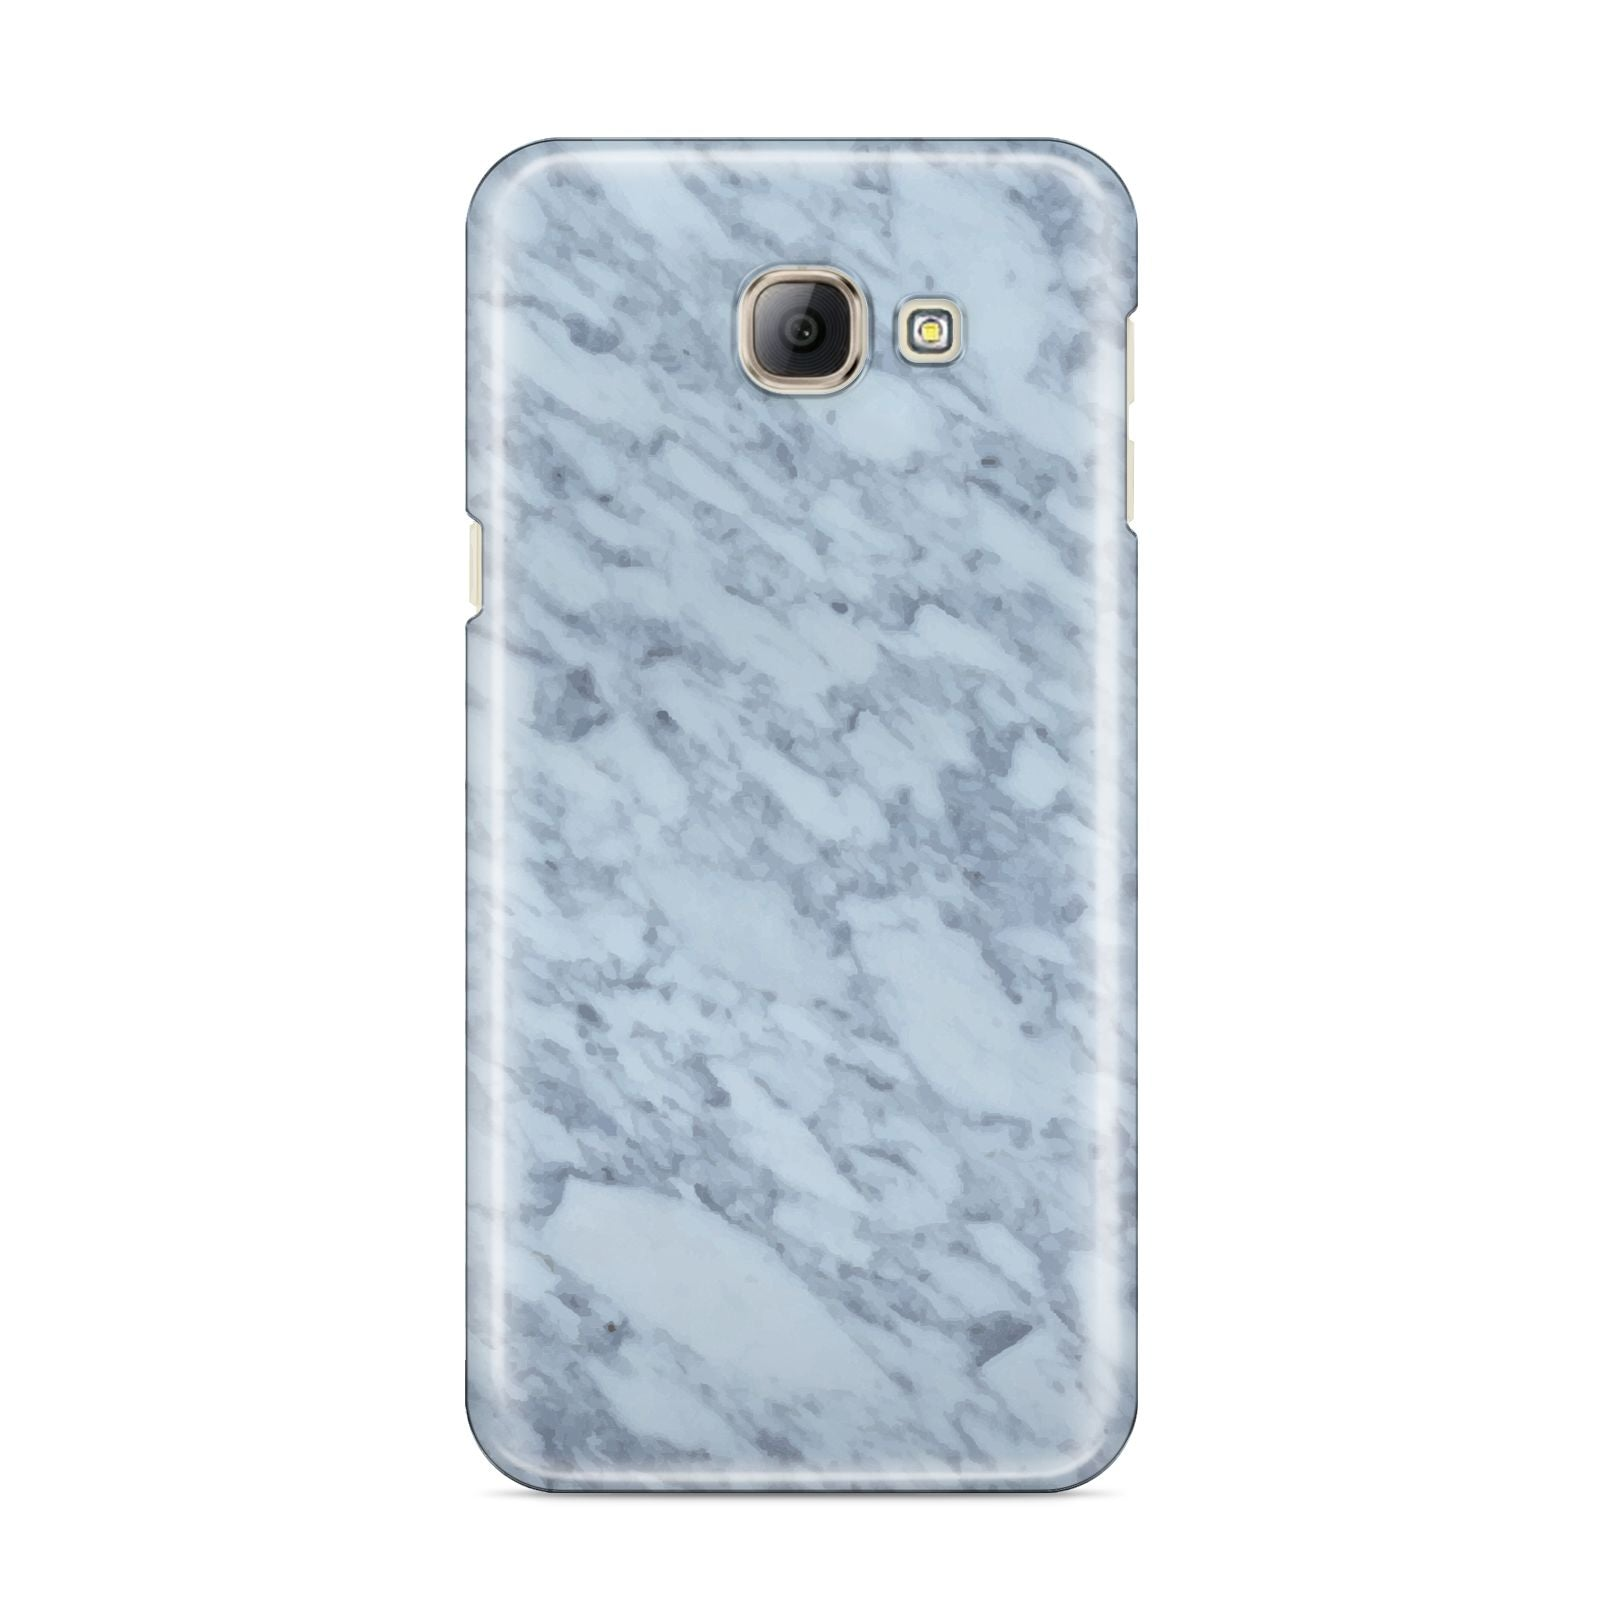 Faux Marble Grey 2 Samsung Galaxy A8 2016 Case